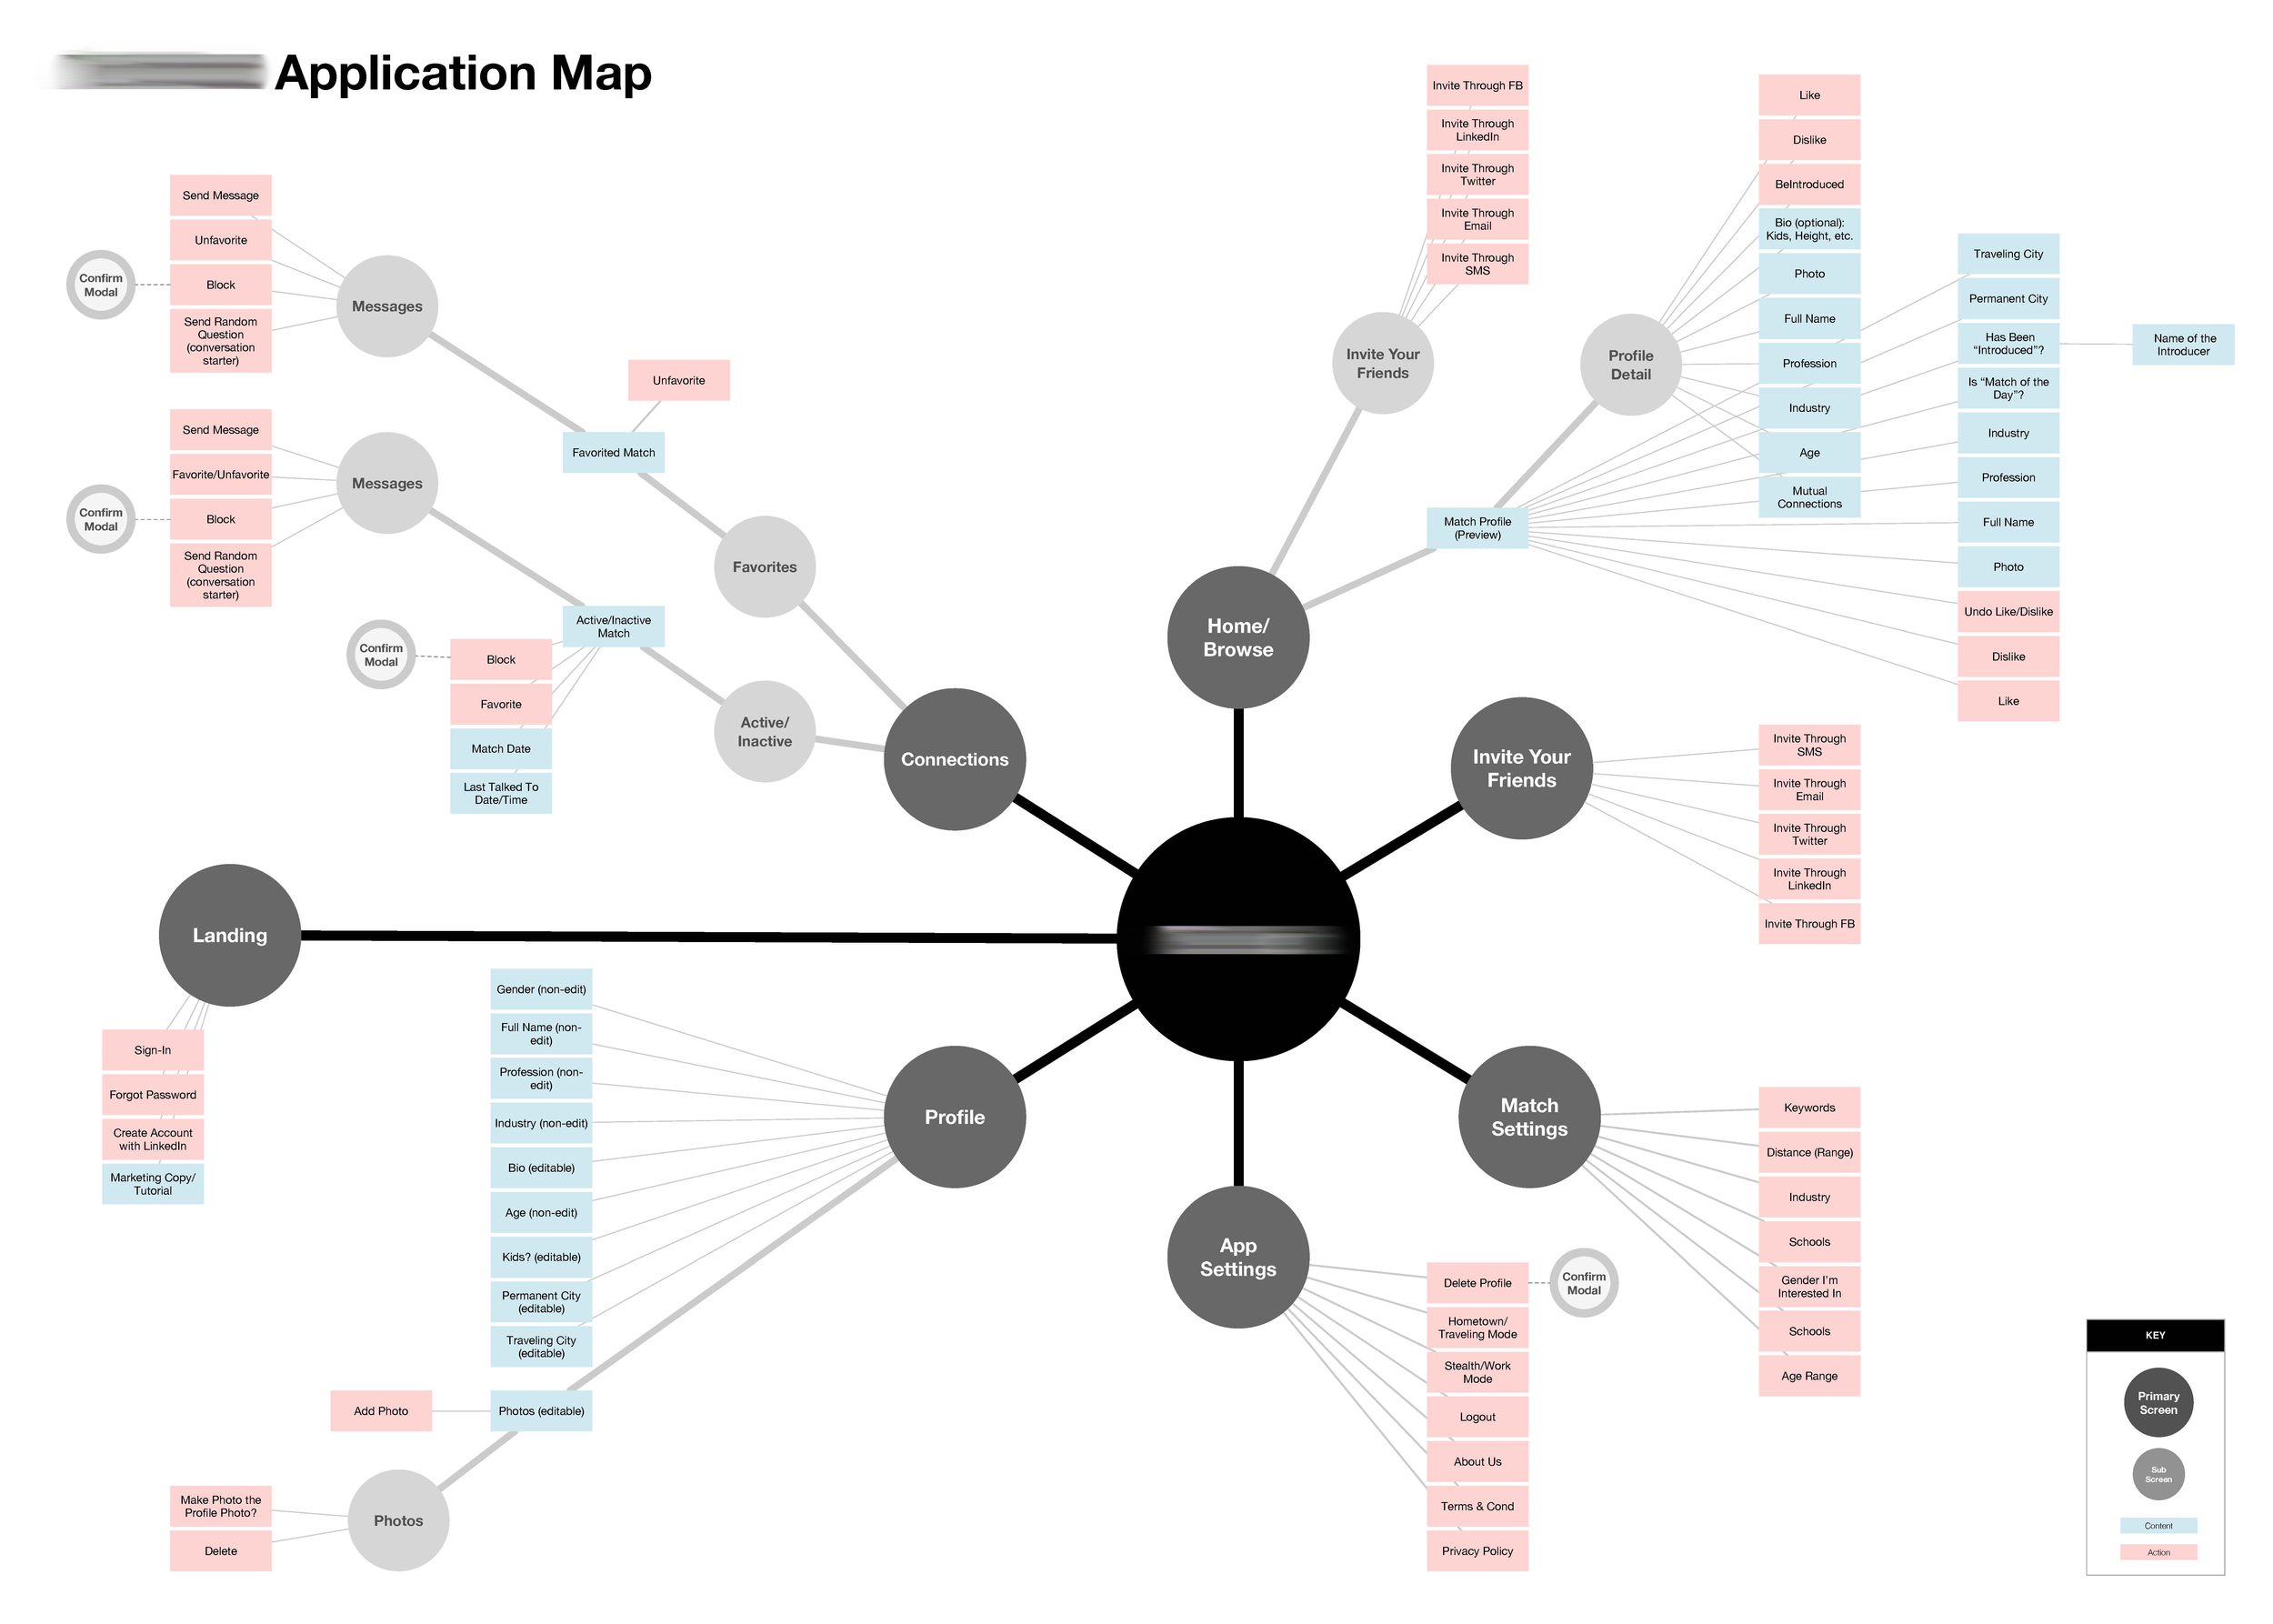 An application map (based on task use) for a dating mobile app